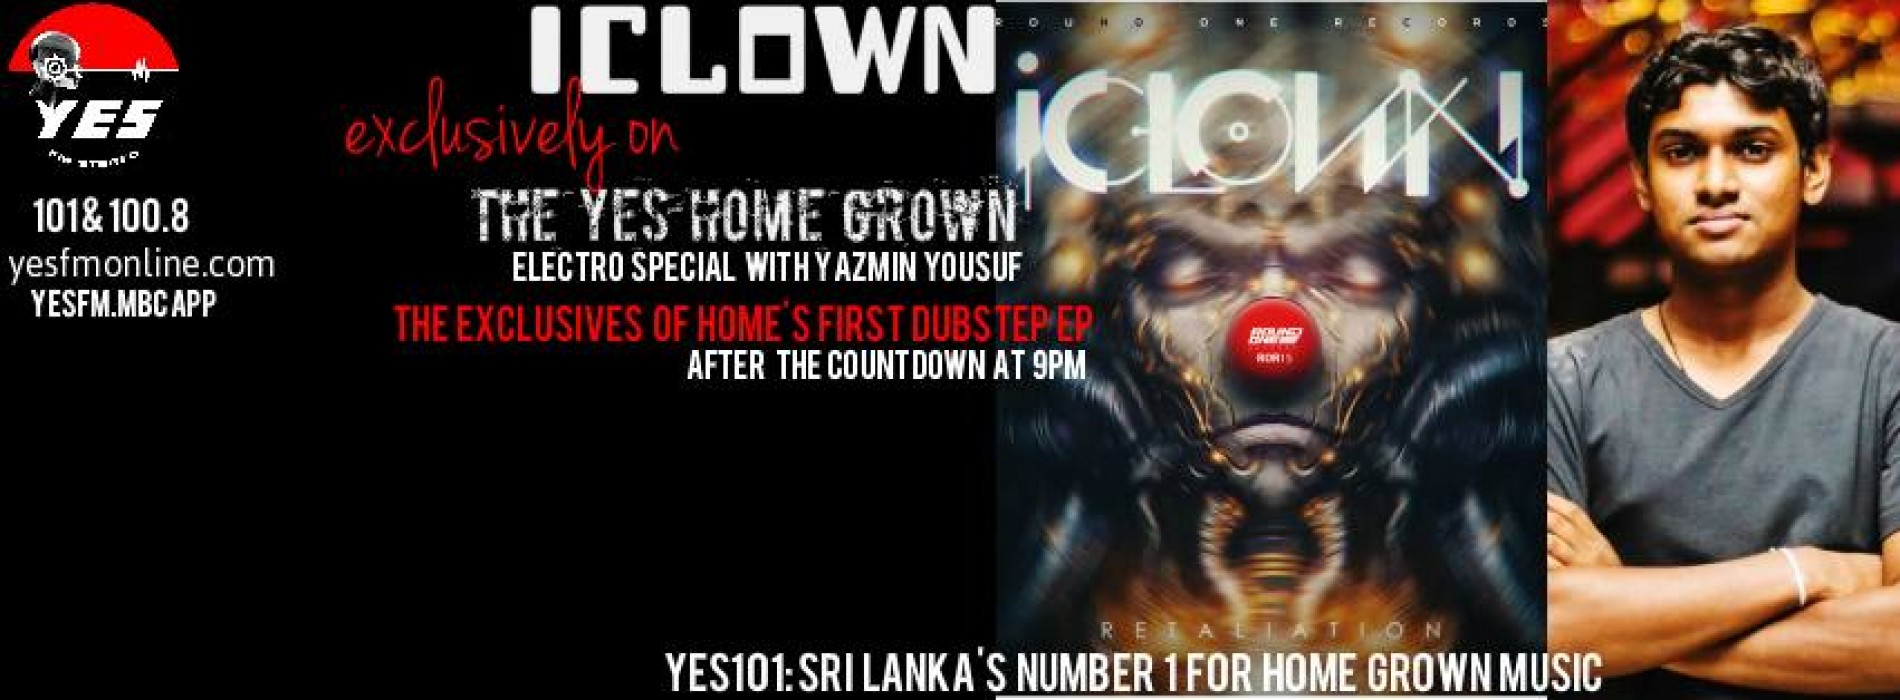 iClown On The YES Home Grown Top 15